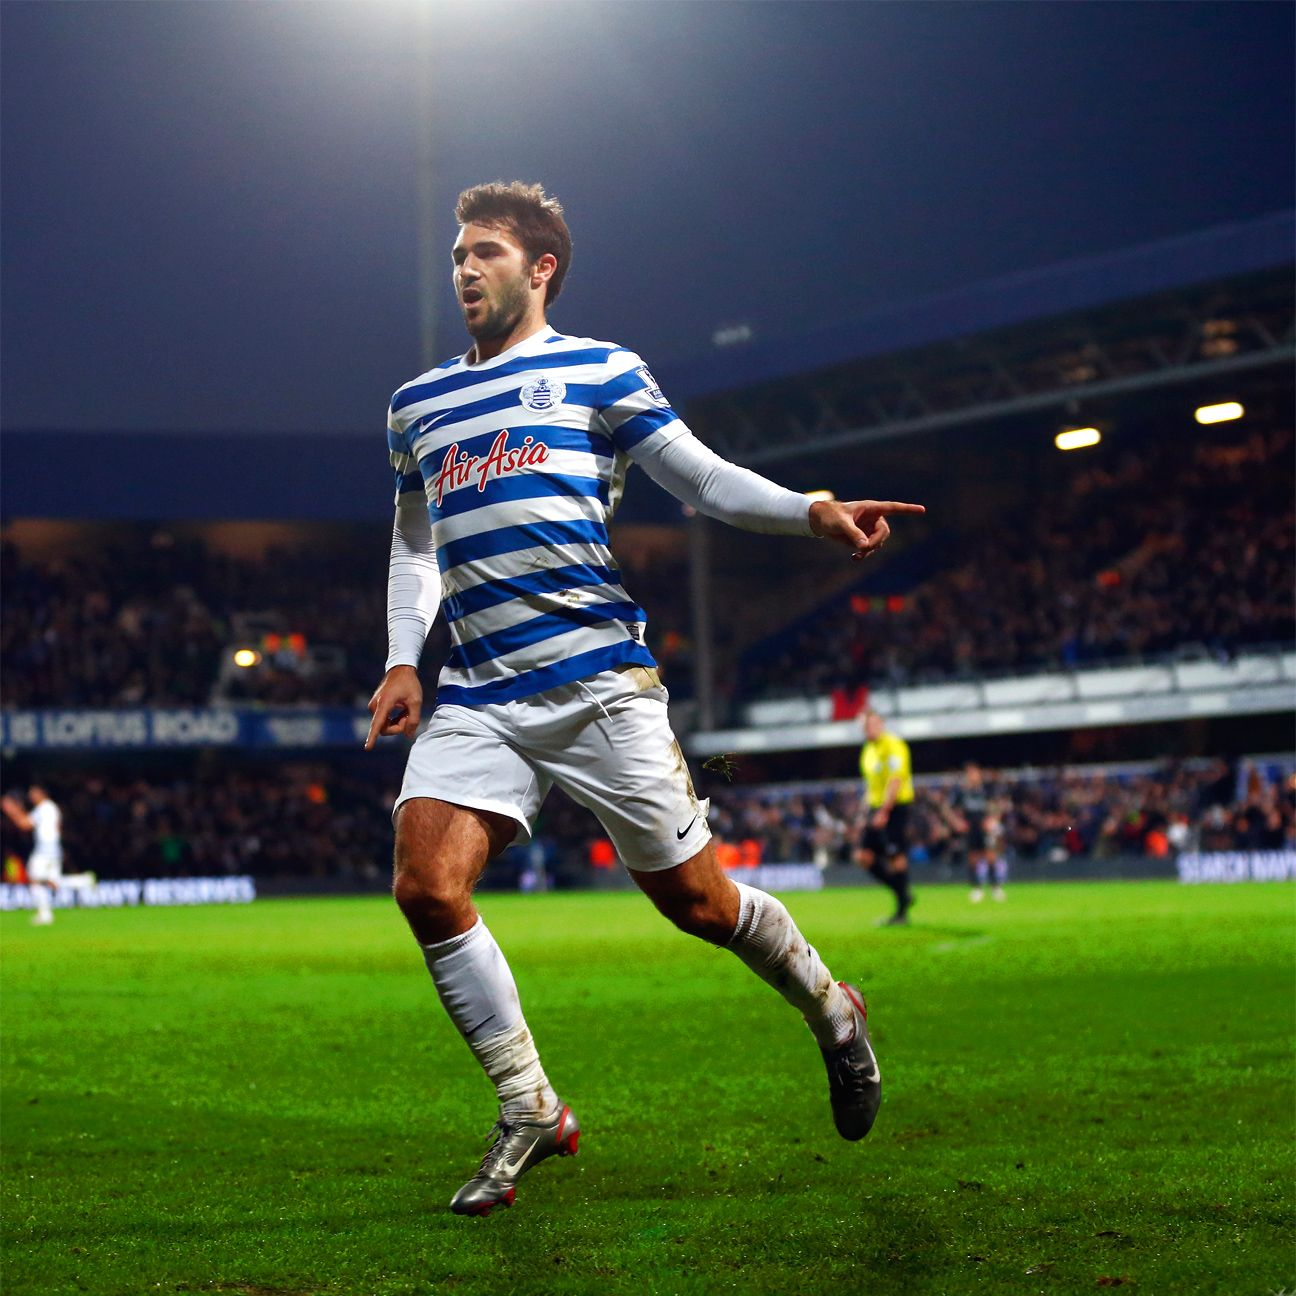 Charlie Austin struck again to hand QPR another precious three points at Loftus Road.